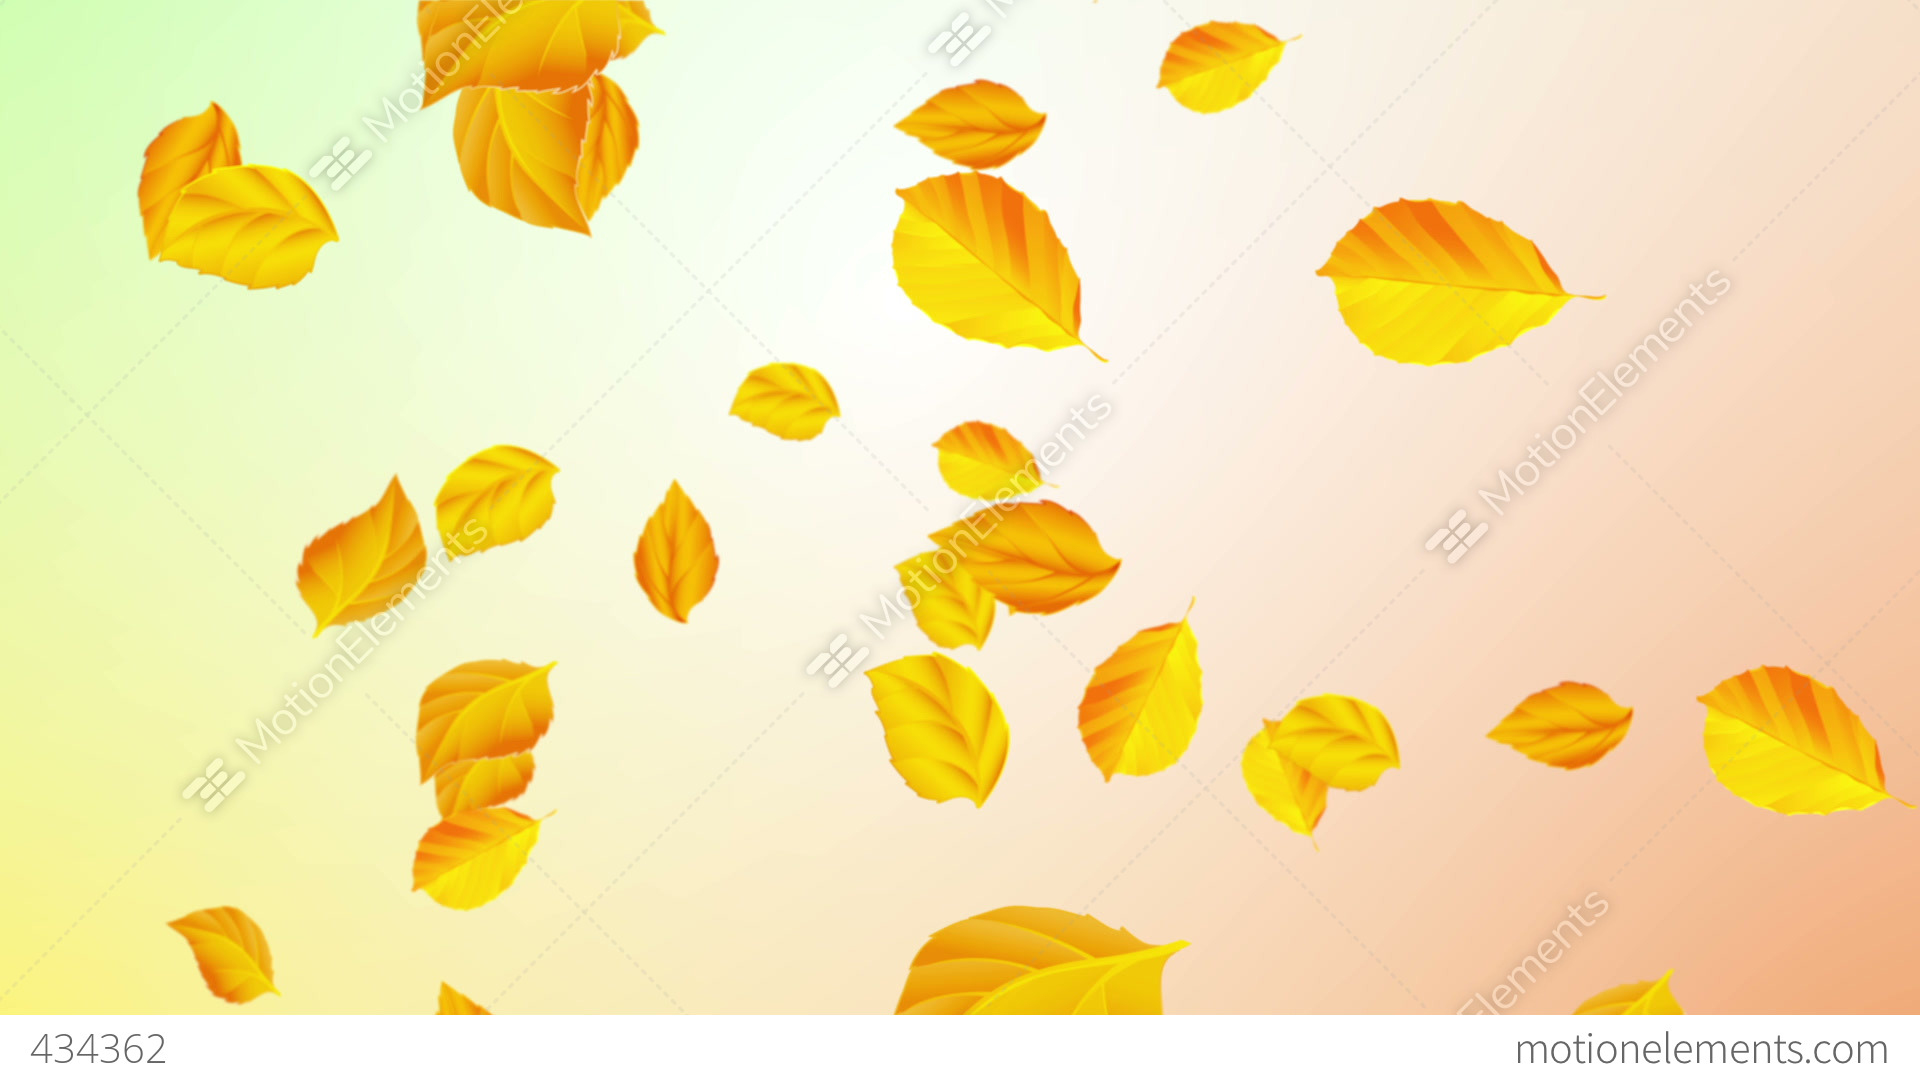 autobiographical analysis of falling leaves Free essay: adeline yen mah's falling leaves works cited missing for years, the world has been oblivious to the painful, degrading traditions.